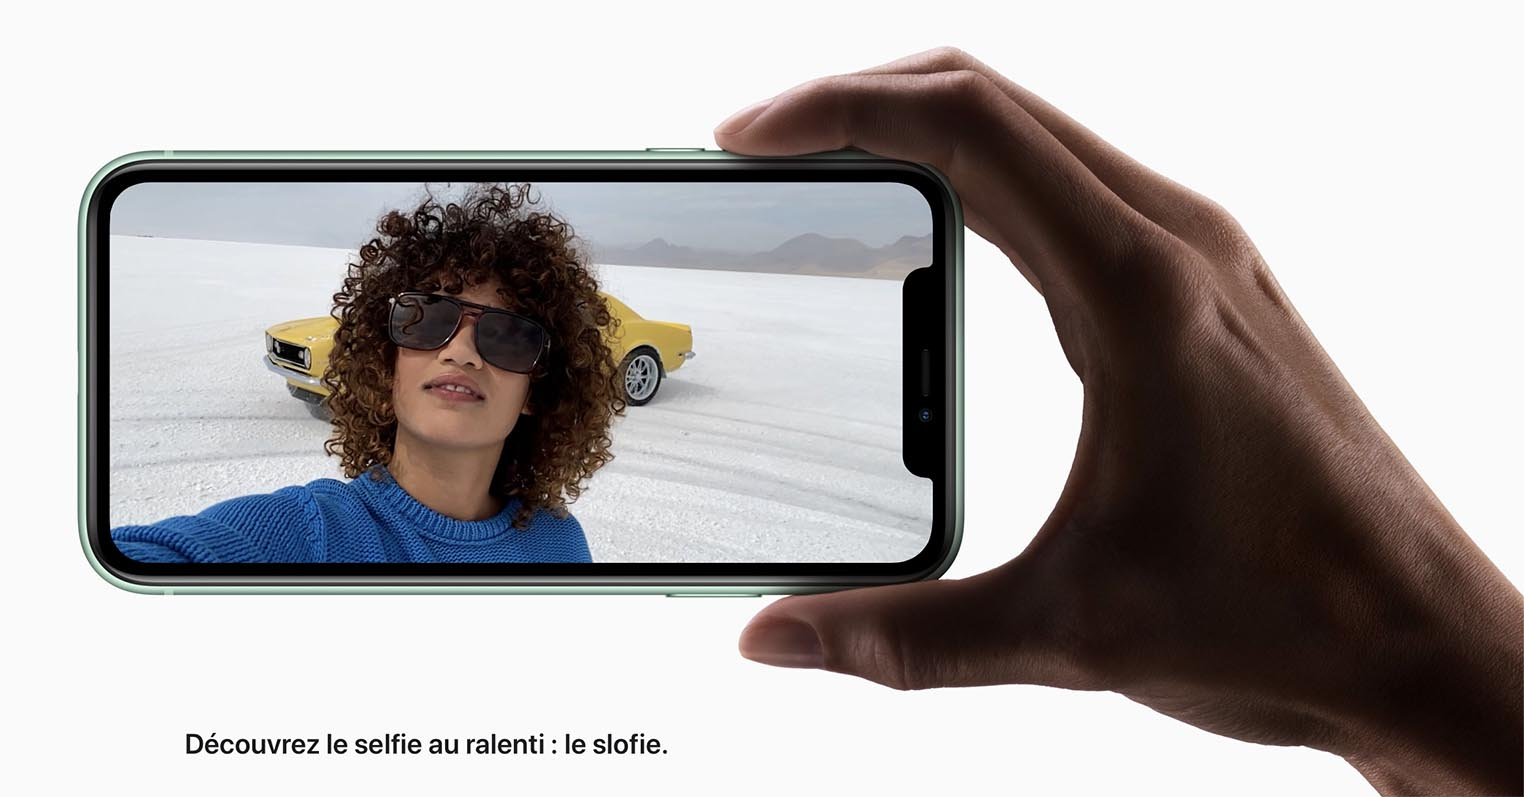 iPhone 11 Truedepth